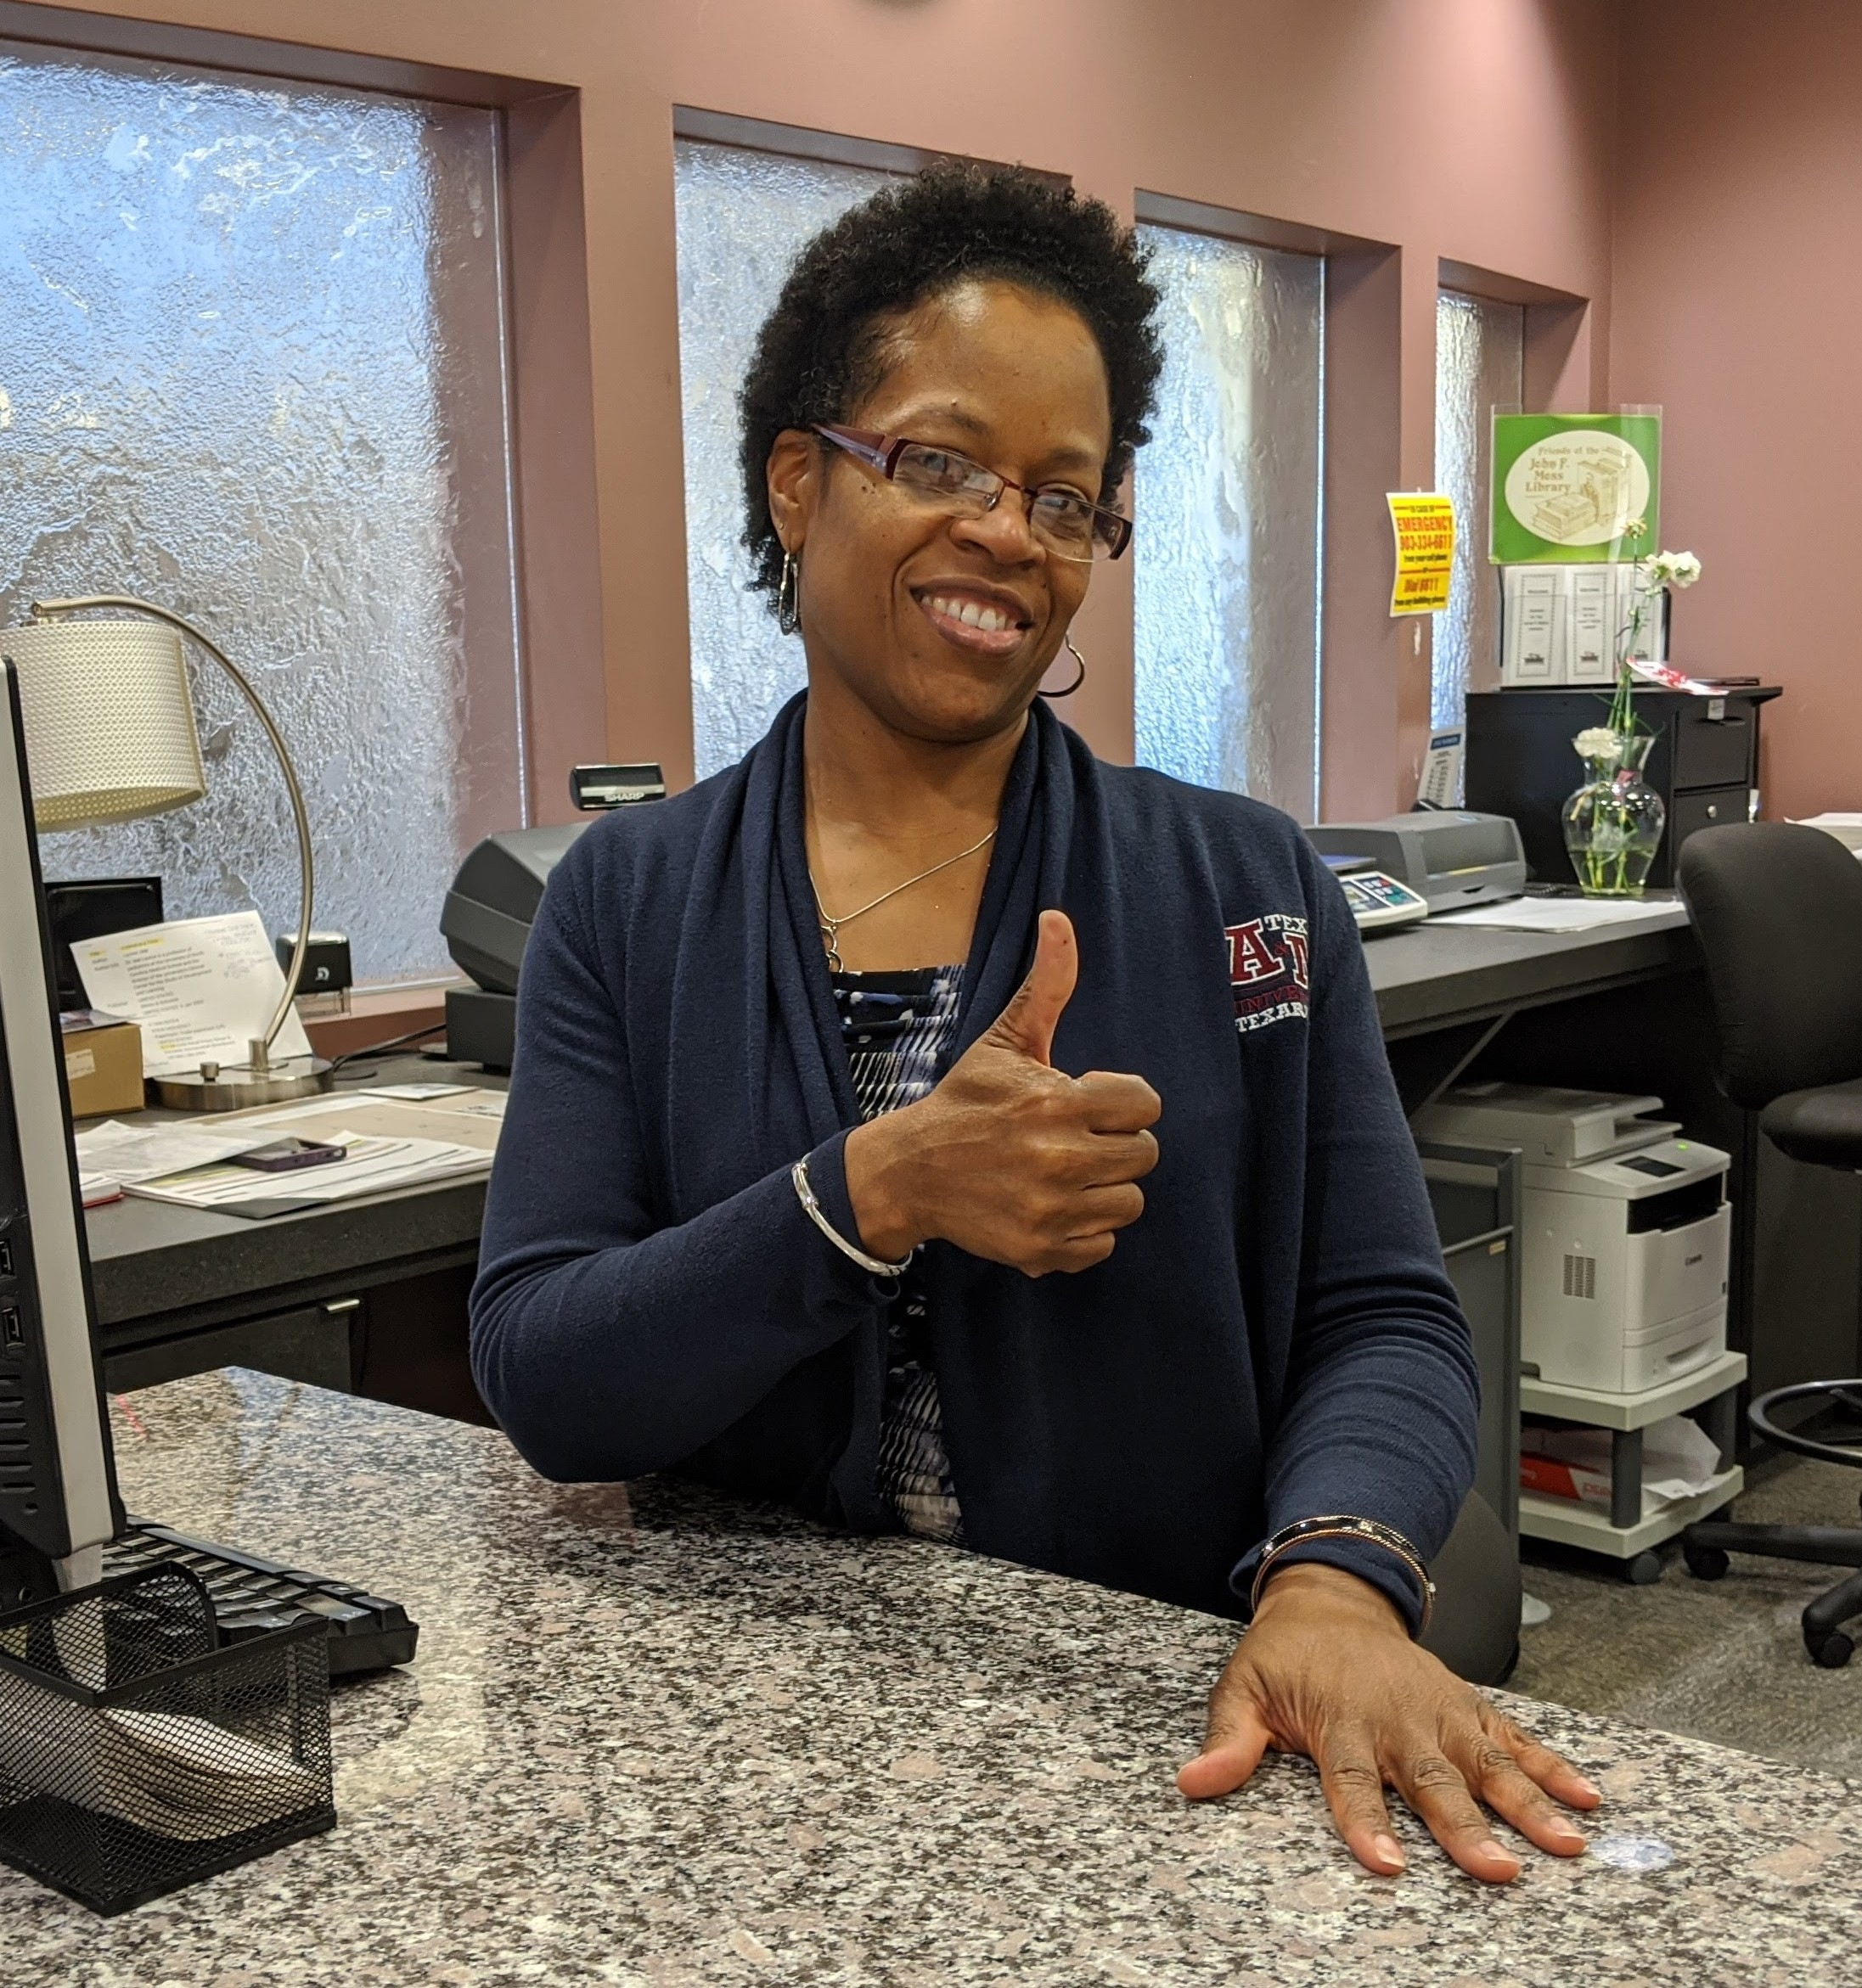 woman at front desk giving a thumbs up